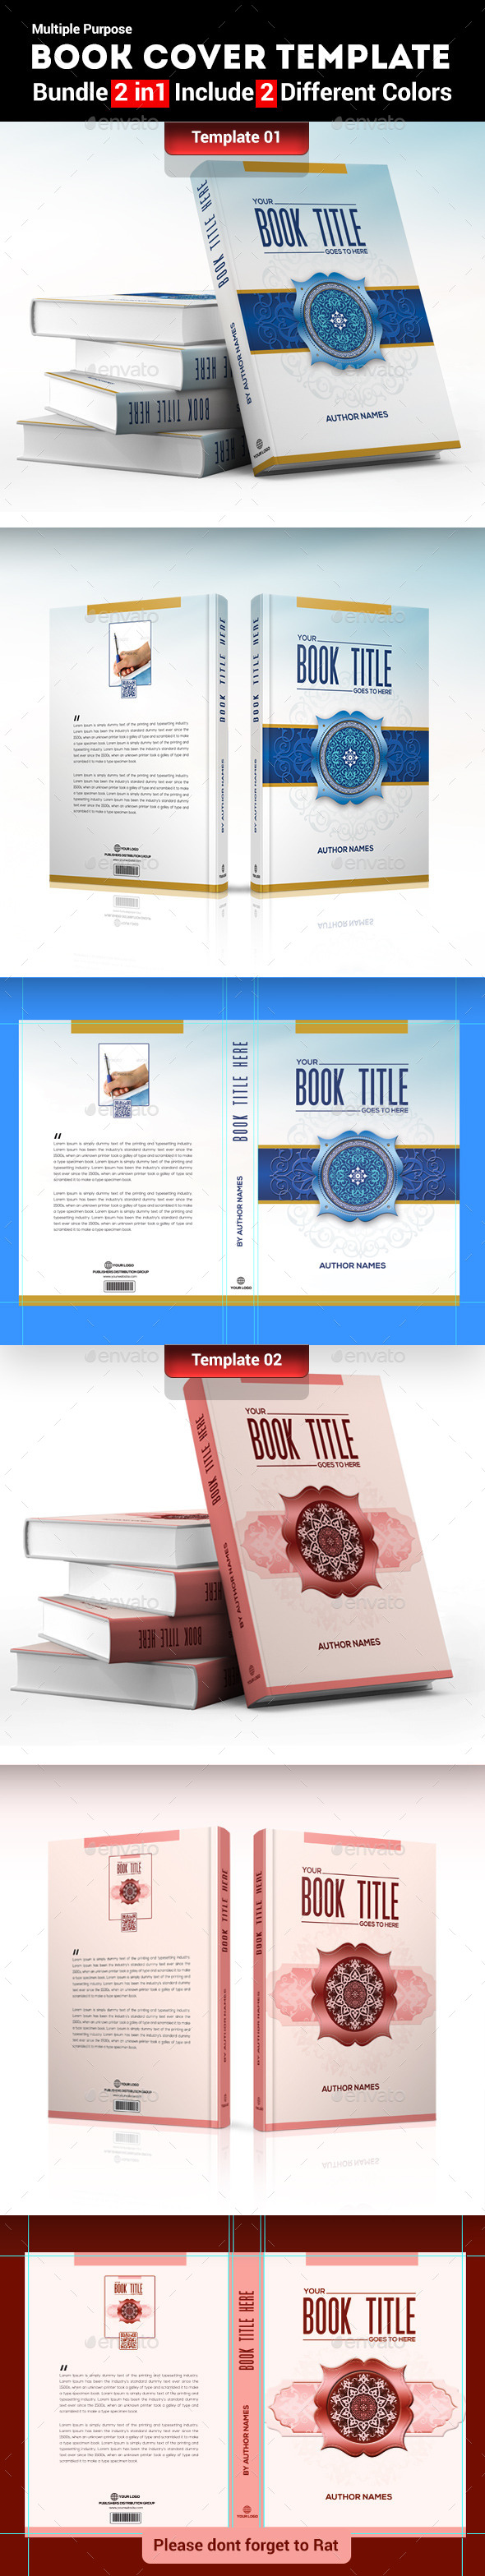 Book Cover Template (Bundle 2 in 1) - Miscellaneous Print Templates